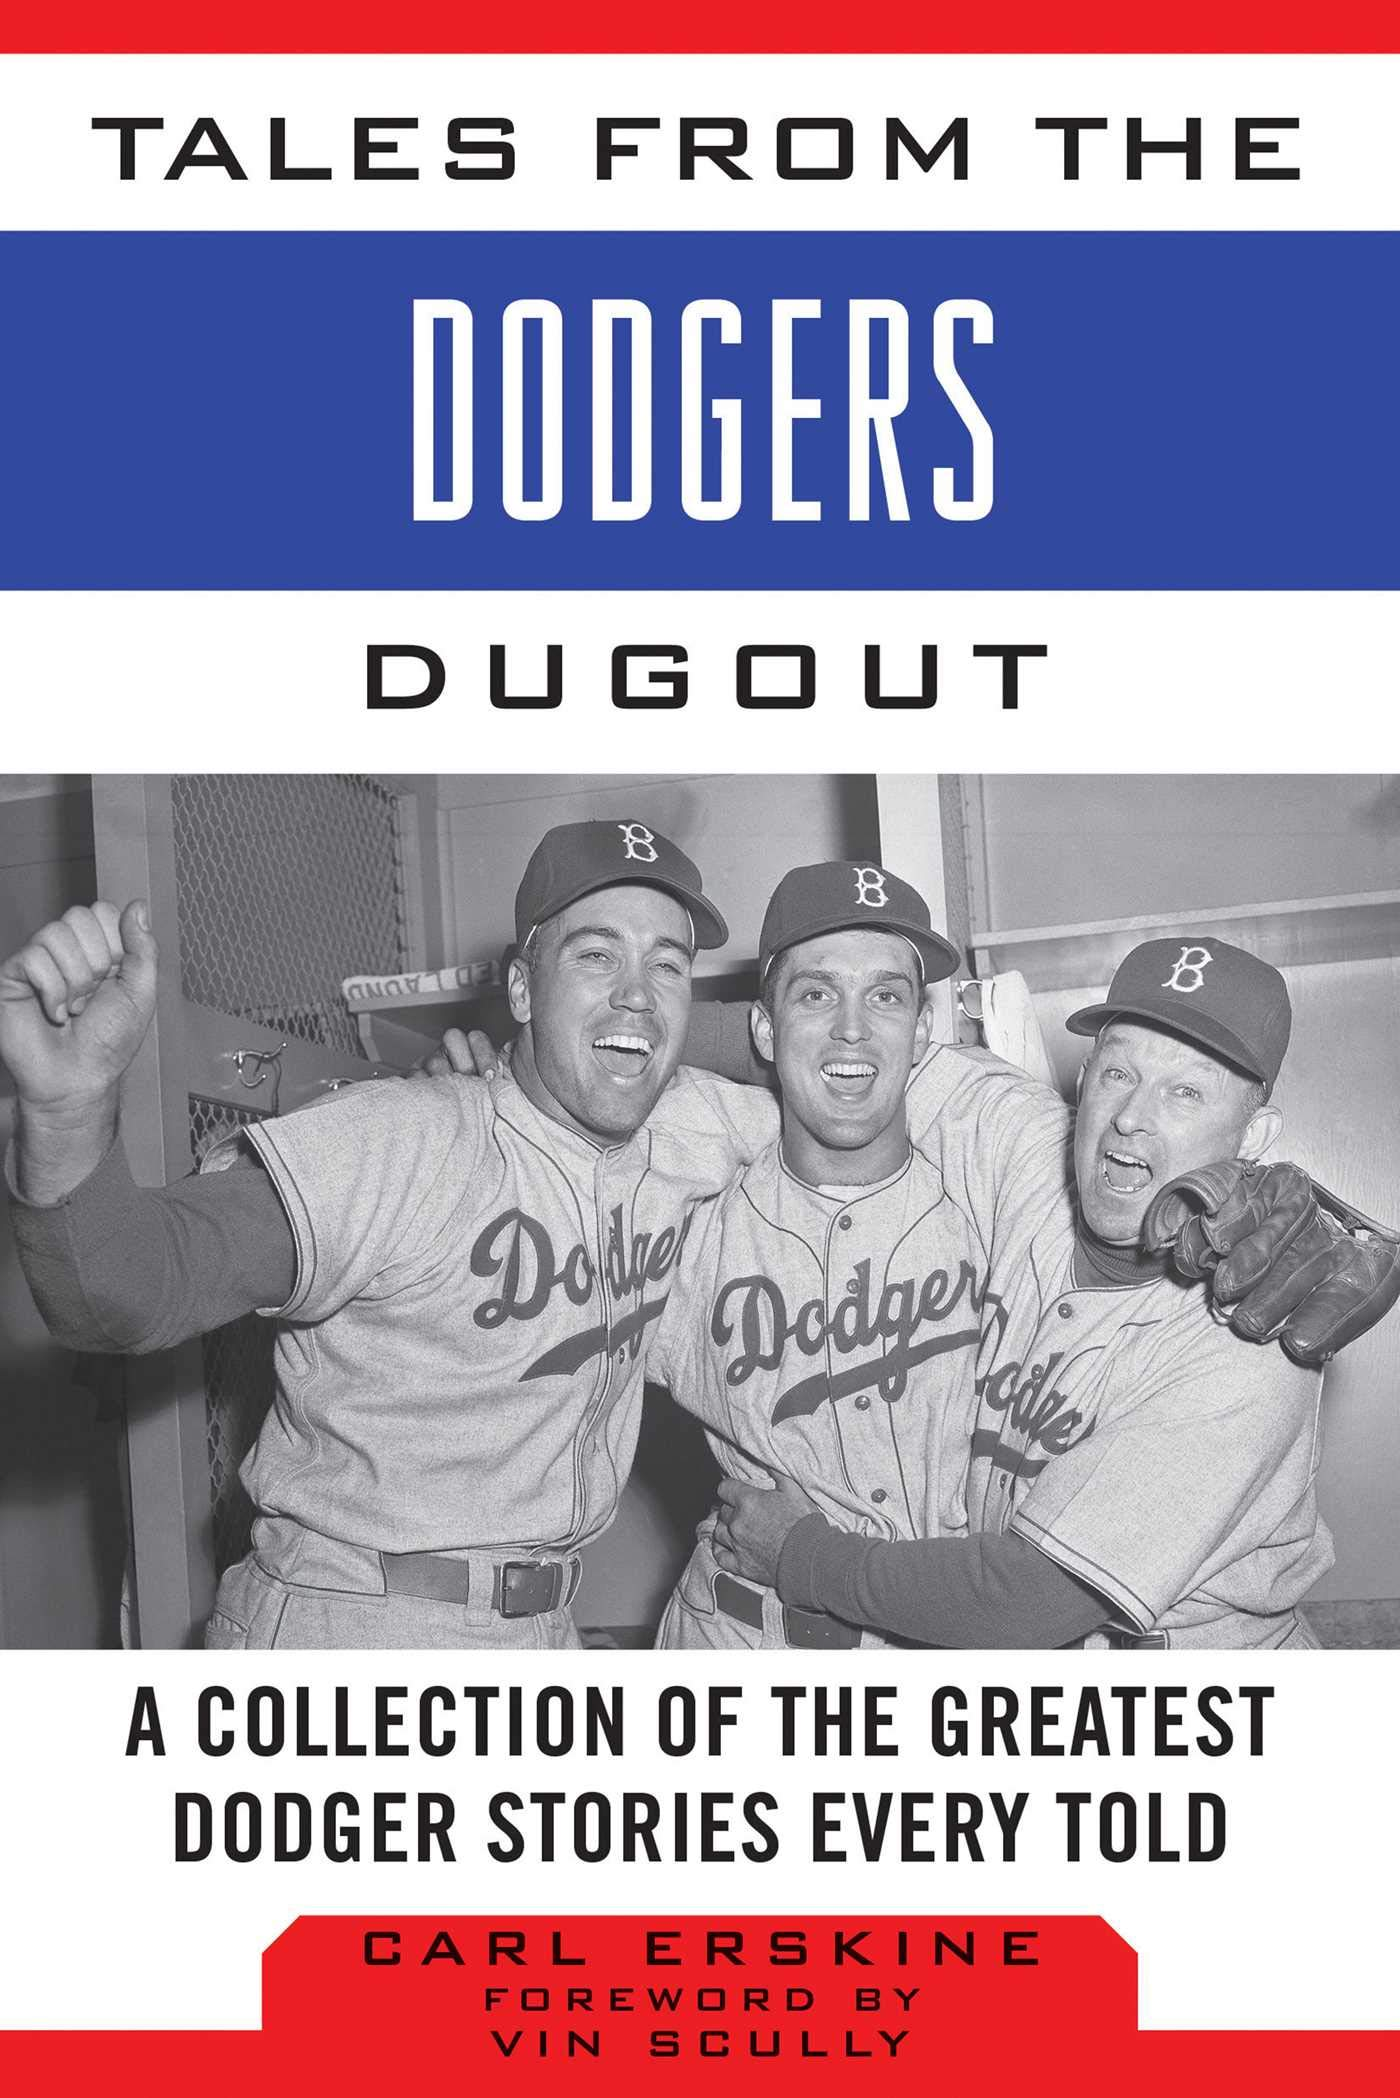 Tales from the Dodgers Dugout: A Collection of the Greatest Dodger Stories Ever Told (Tales from the Team) by Sports Publishing